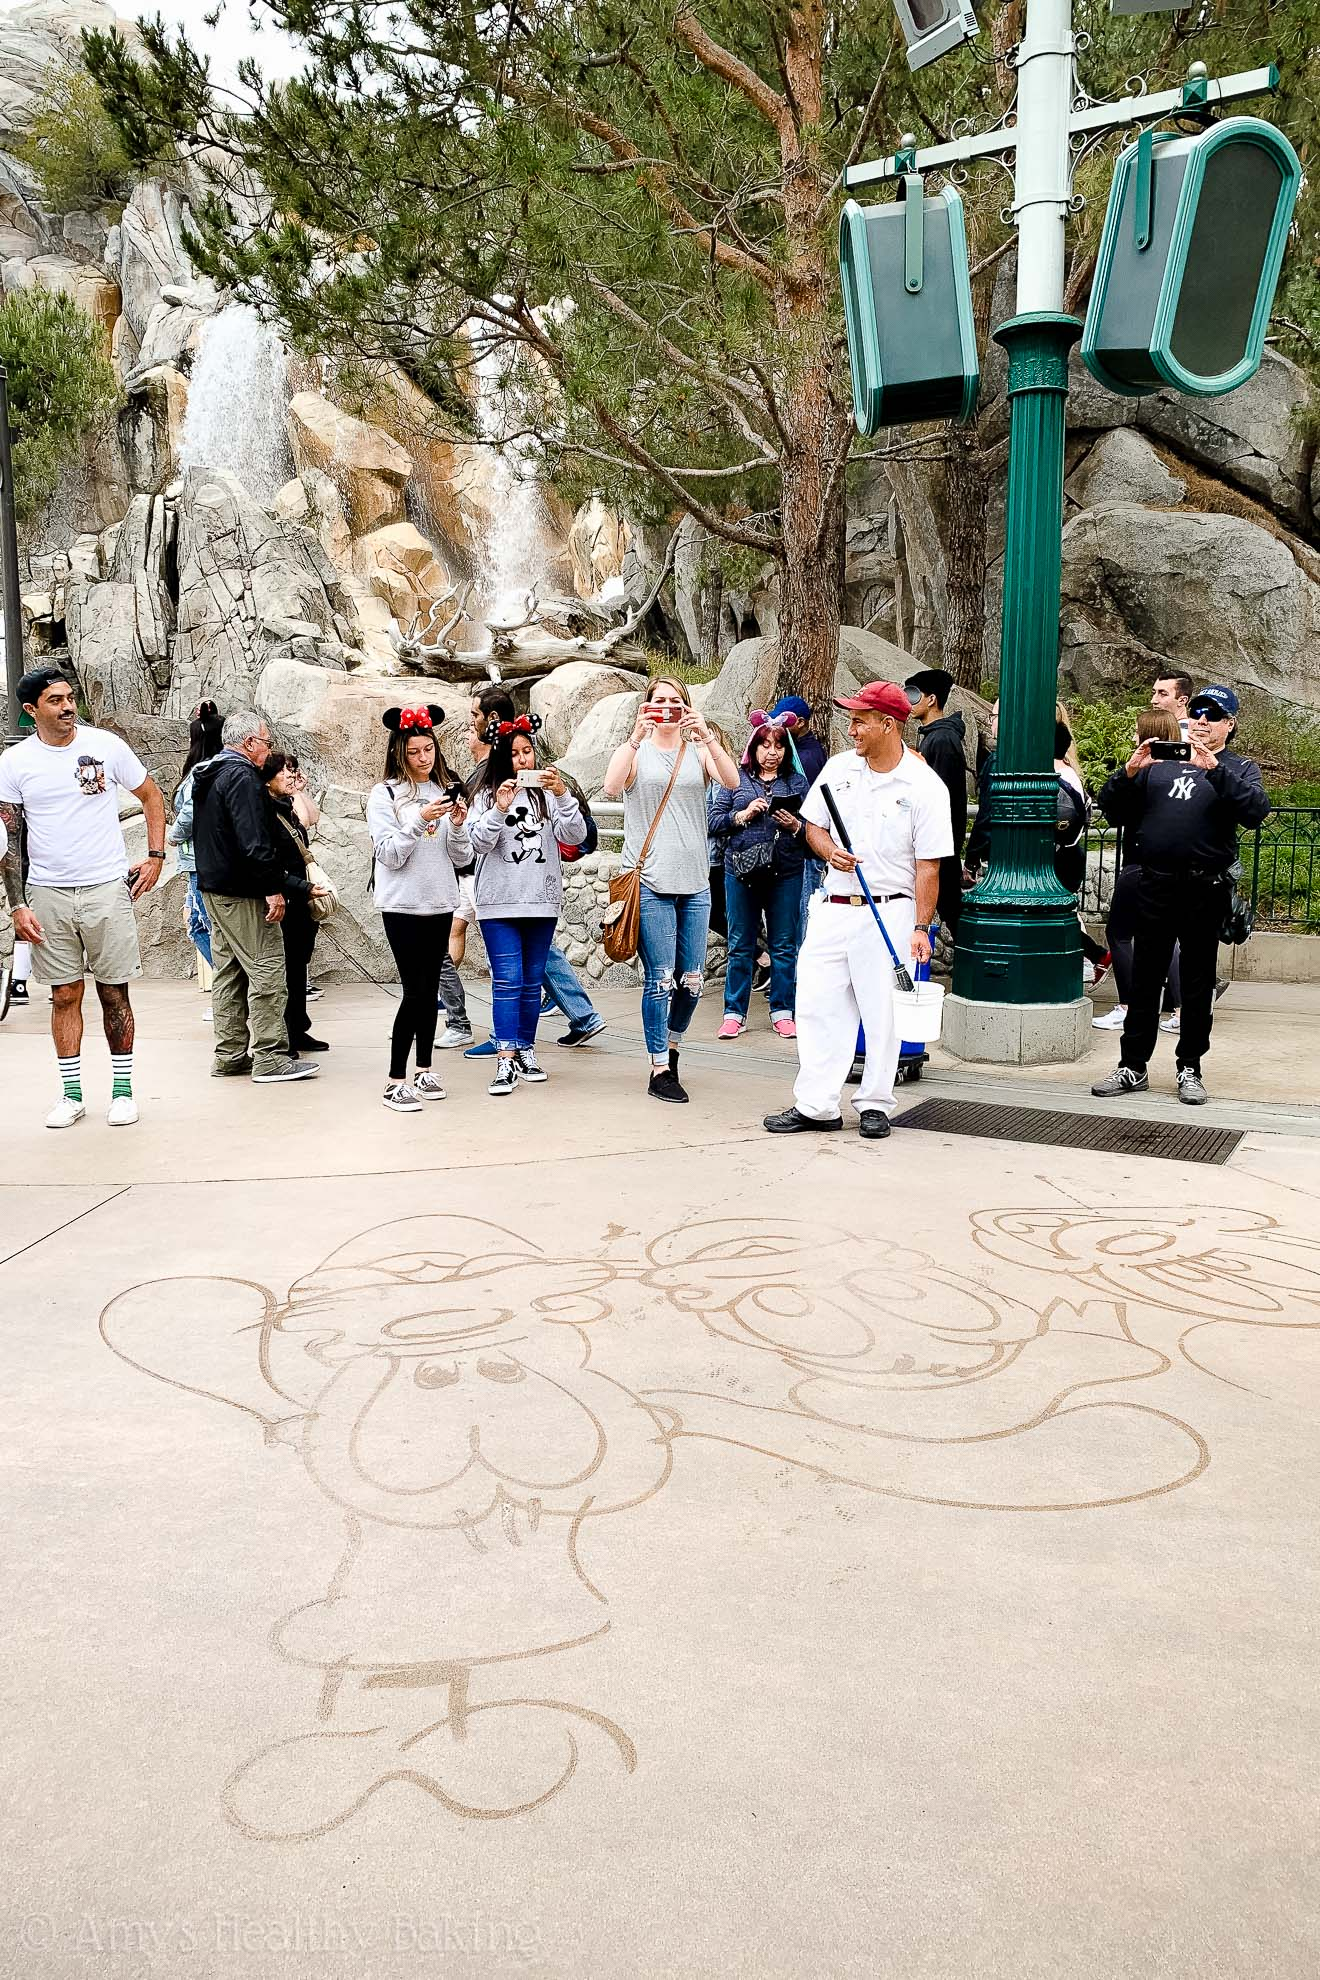 Disney characters drawn in water on the concrete in California Adventure